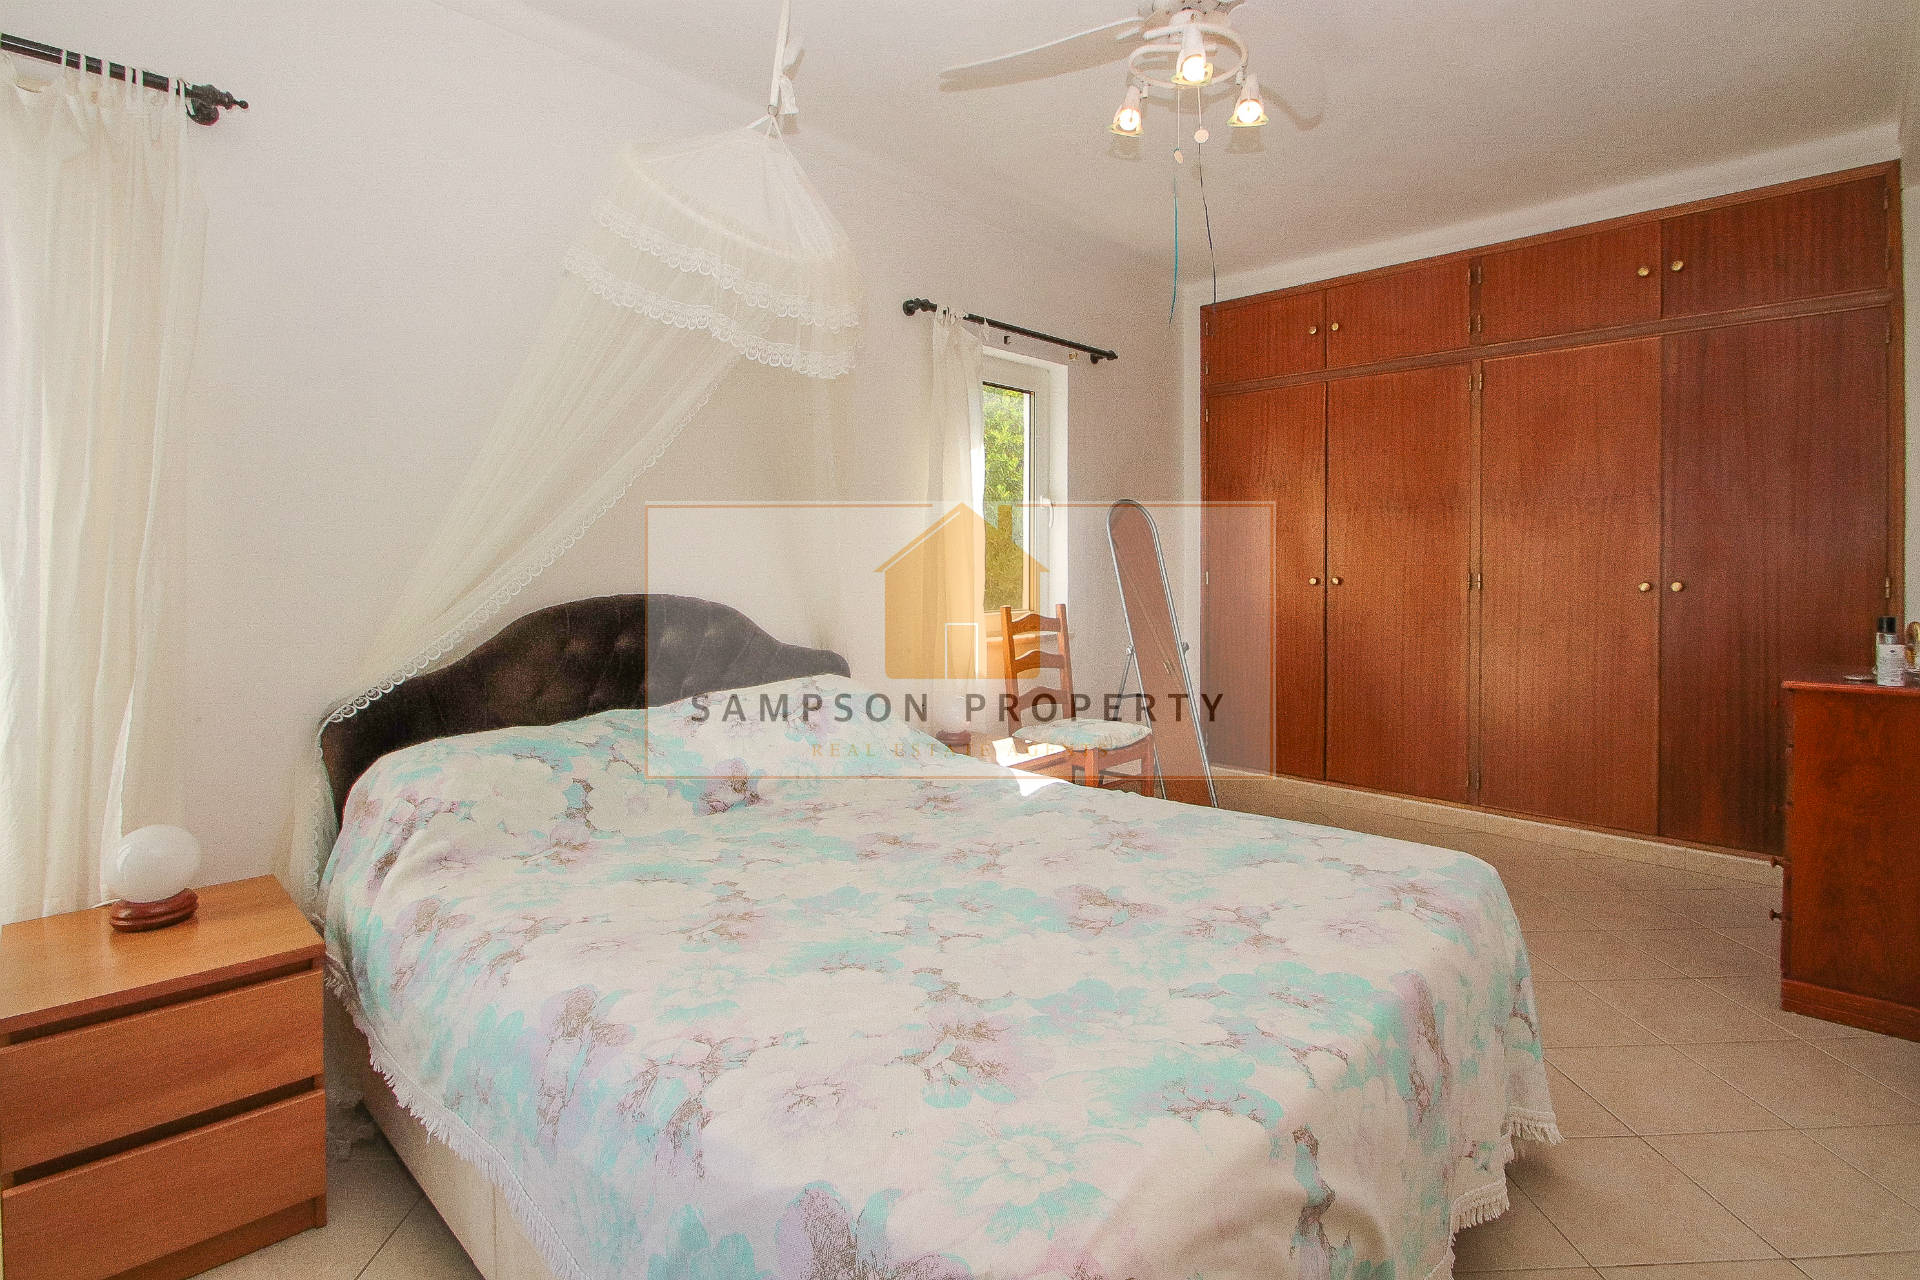 2 bed Villa + 1 bed cottage + studio